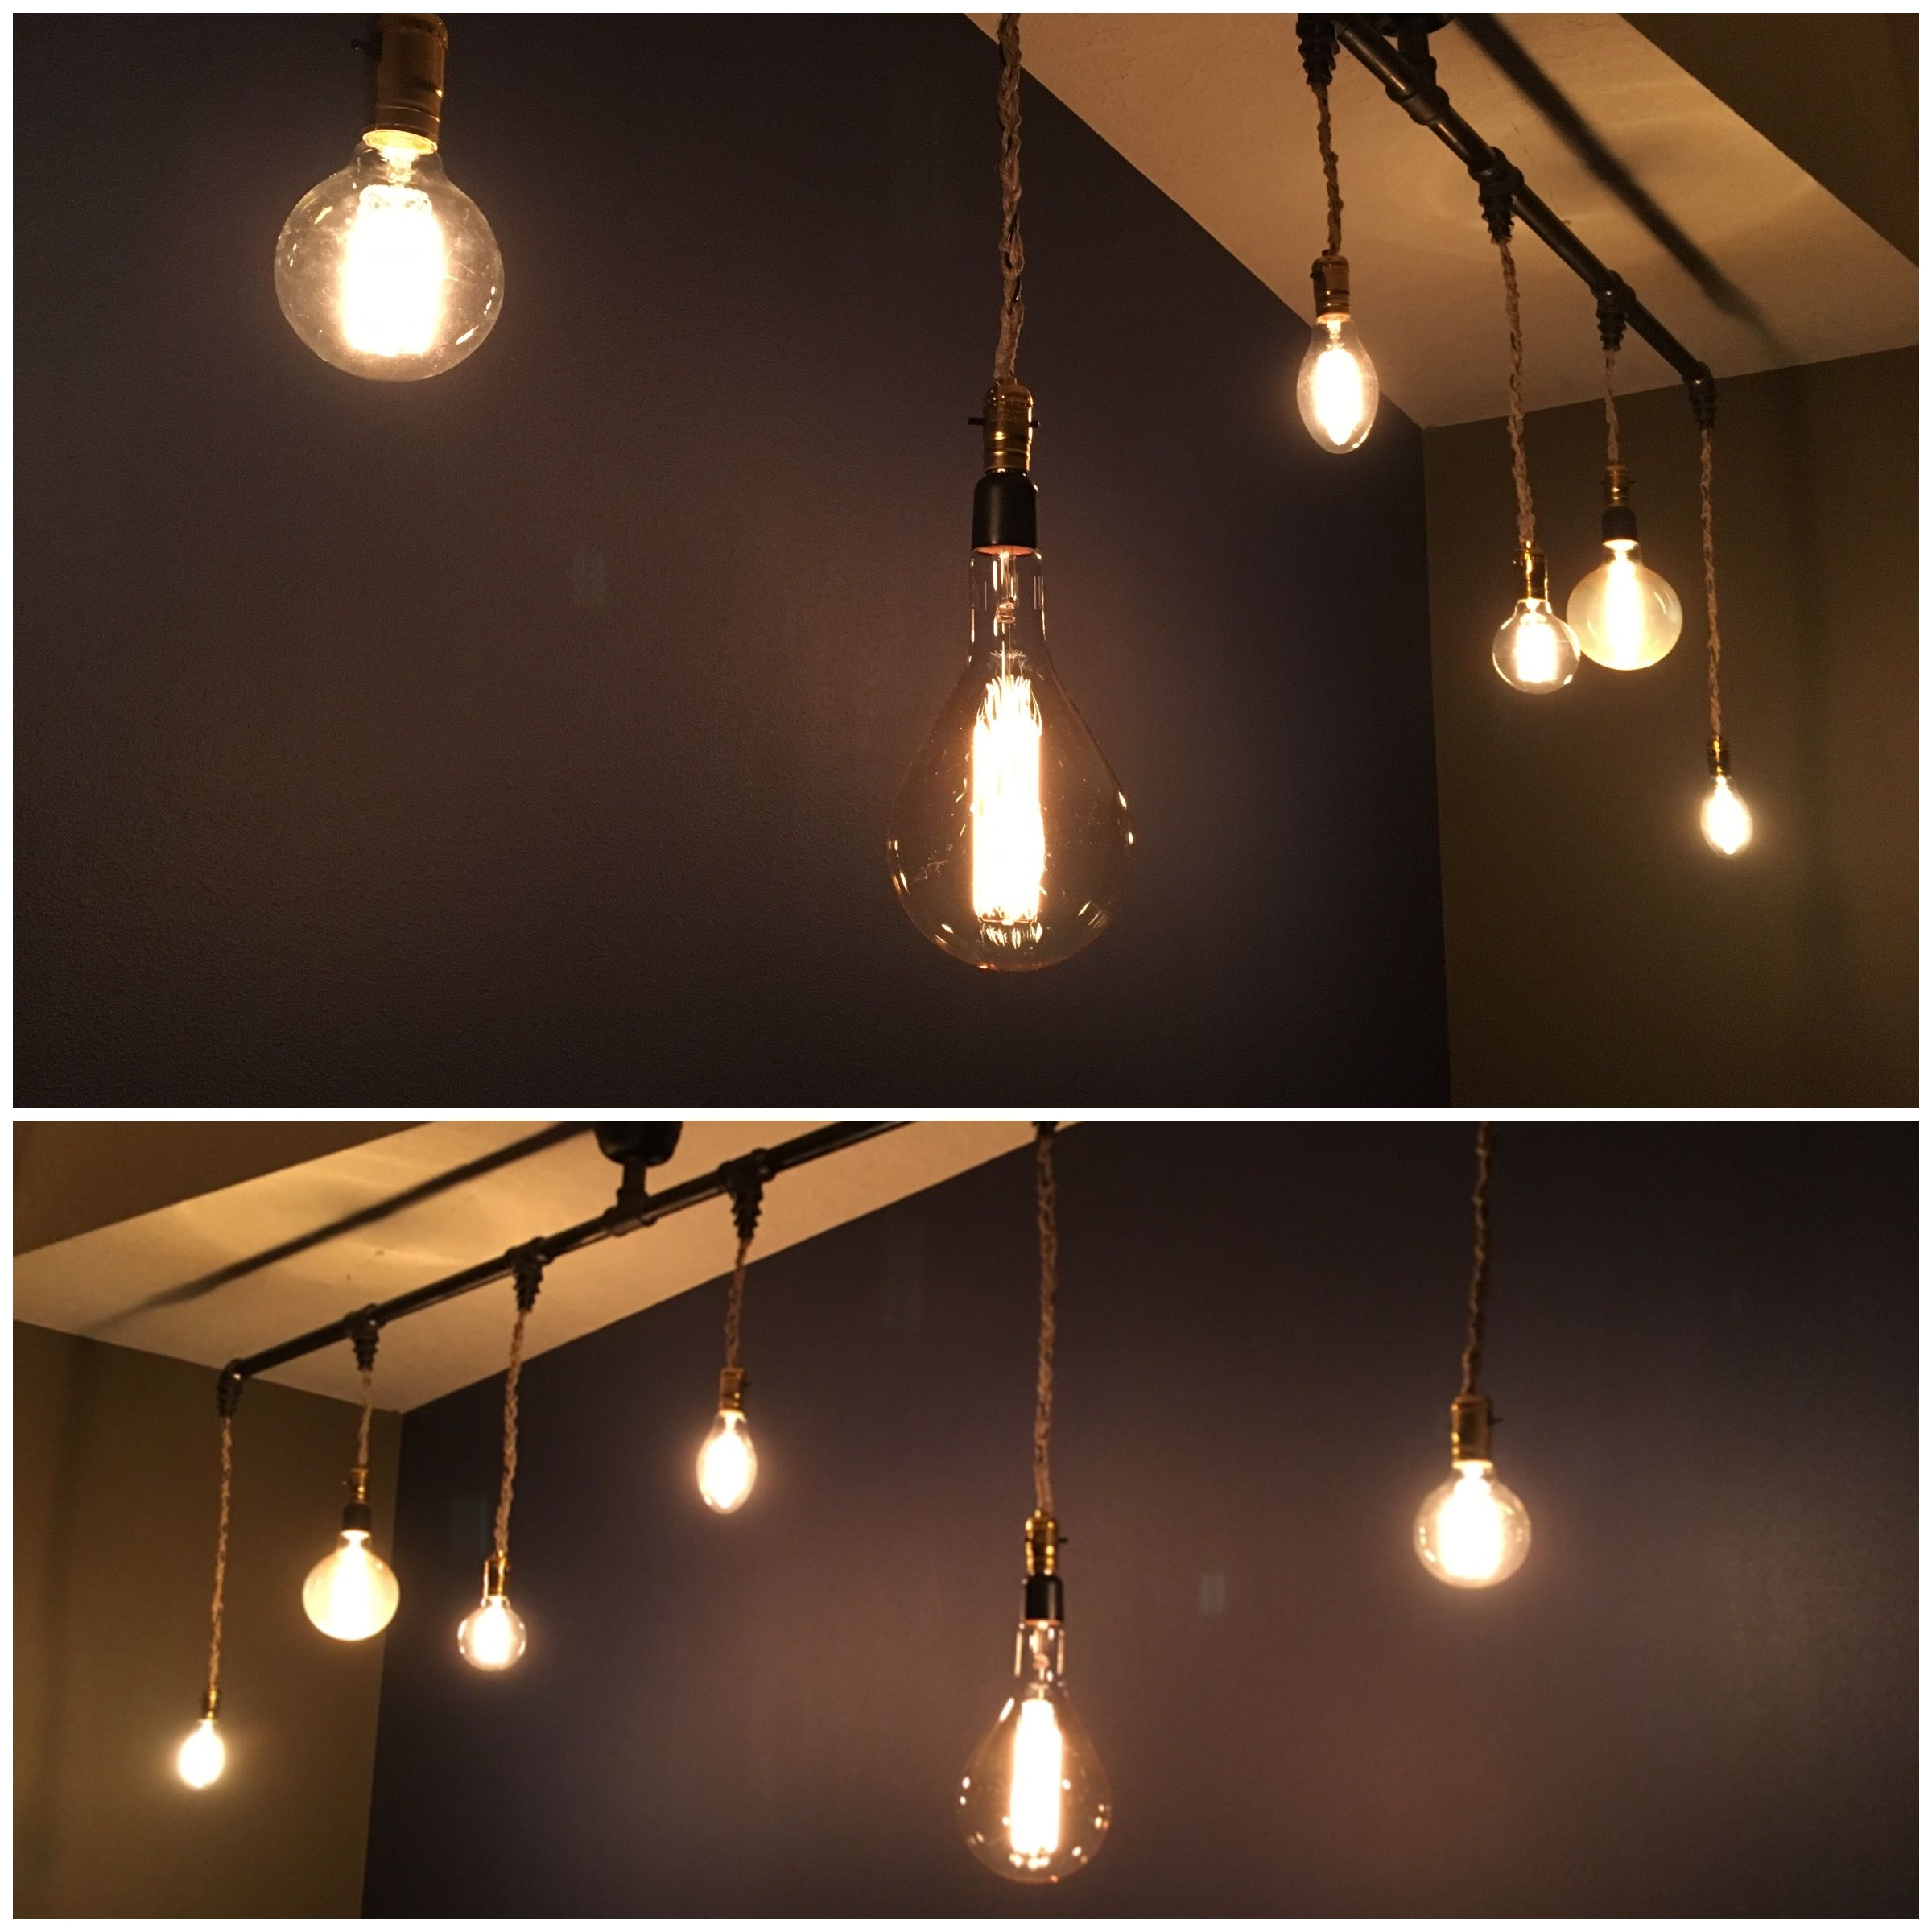 """Pendant Light Ceiling Fixture"""" Black Iron Pipe and Edison Bulbs A"""